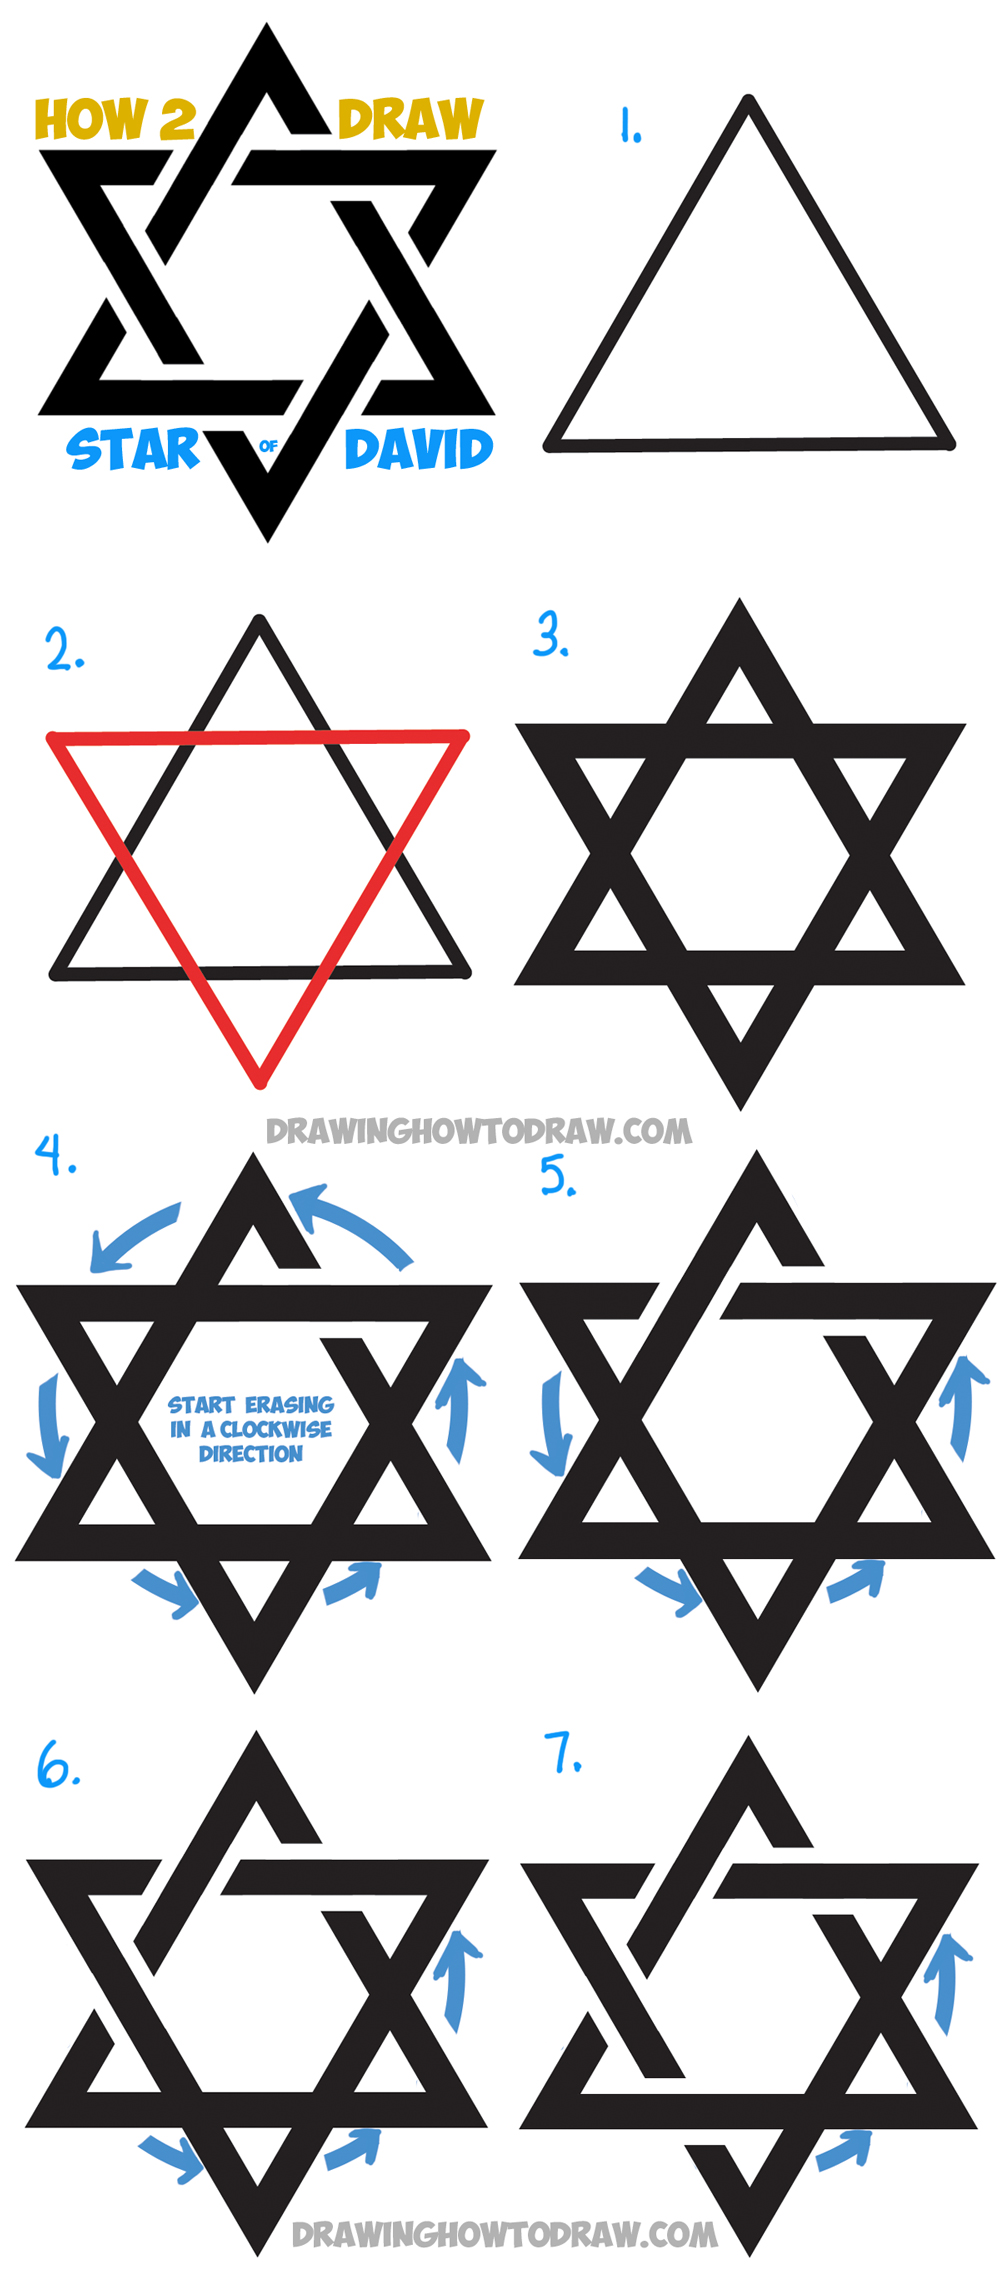 How to draw the star of david the jewish star with easy steps how to draw the star of david the jewish star with fancy interlocking triangles biocorpaavc Choice Image